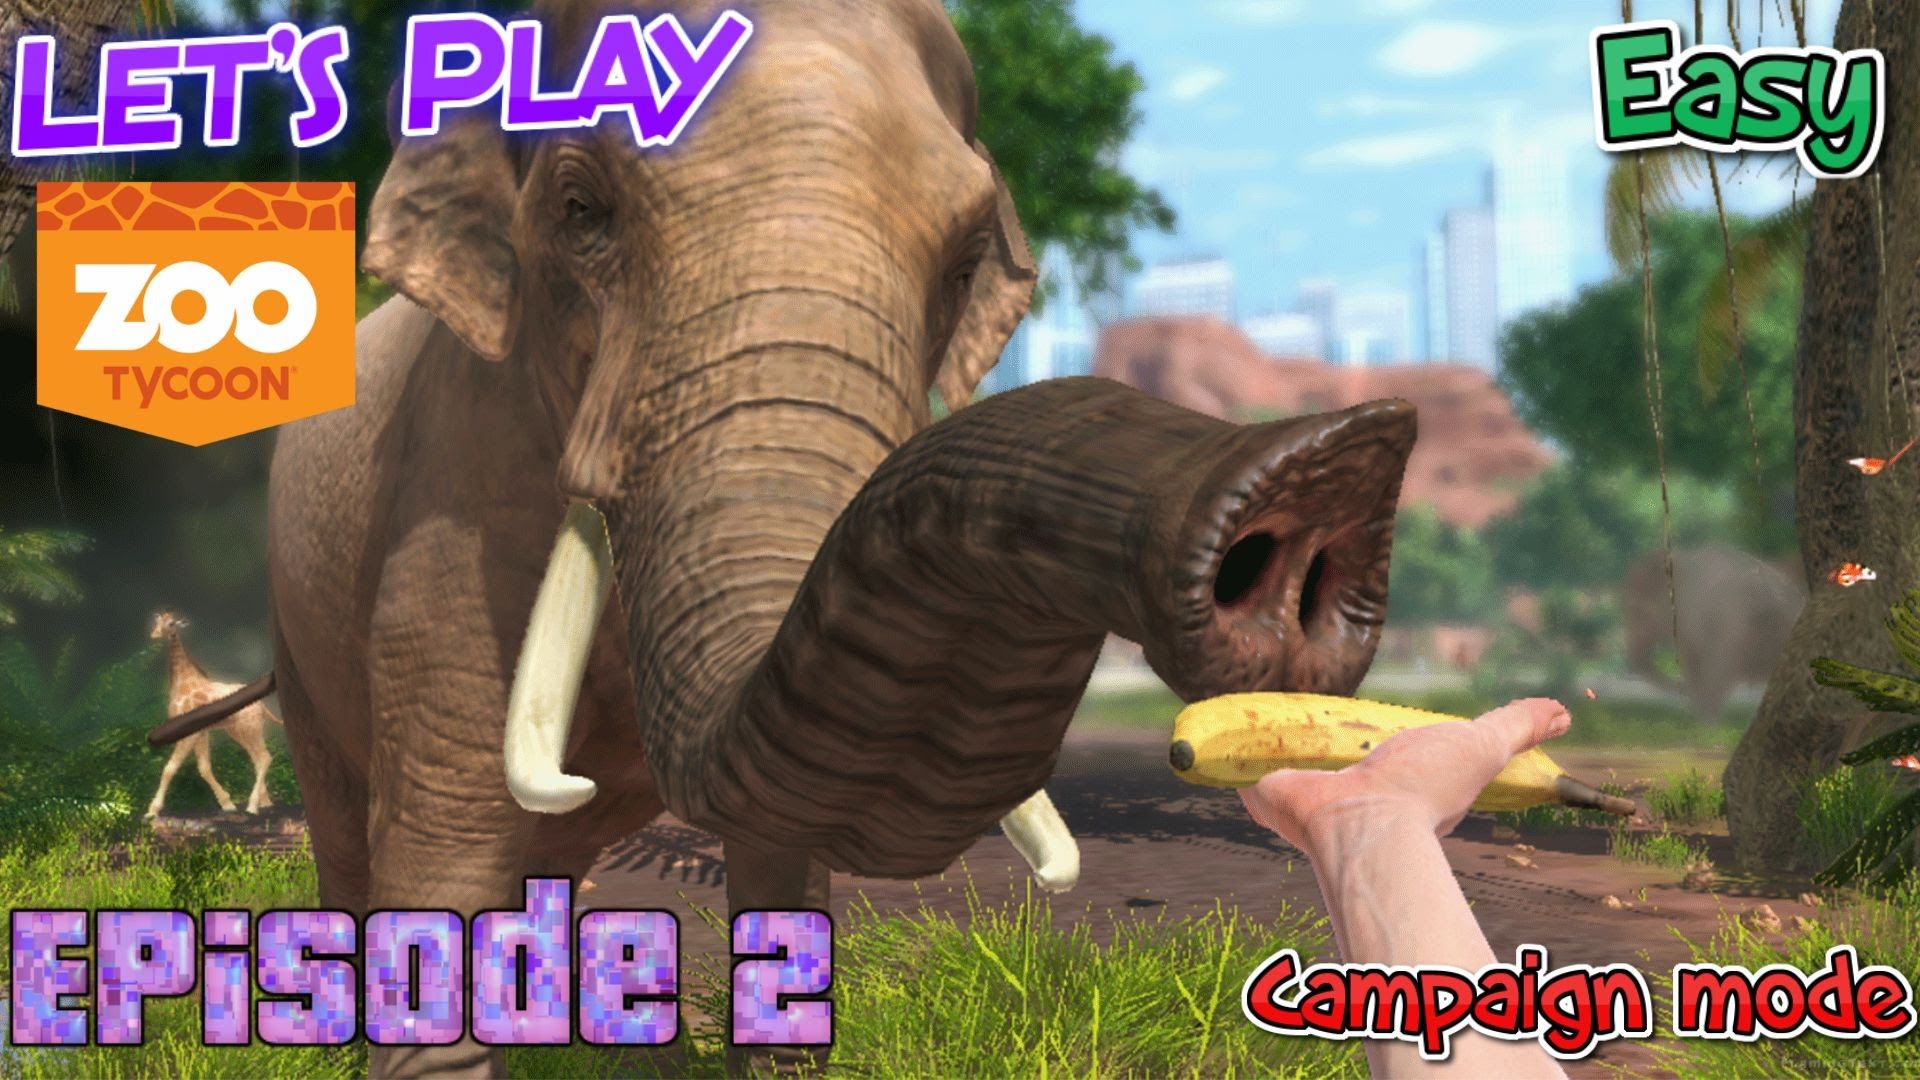 Zoo tycoon xbox one Campaign - Prevent animal abuse Episode 2